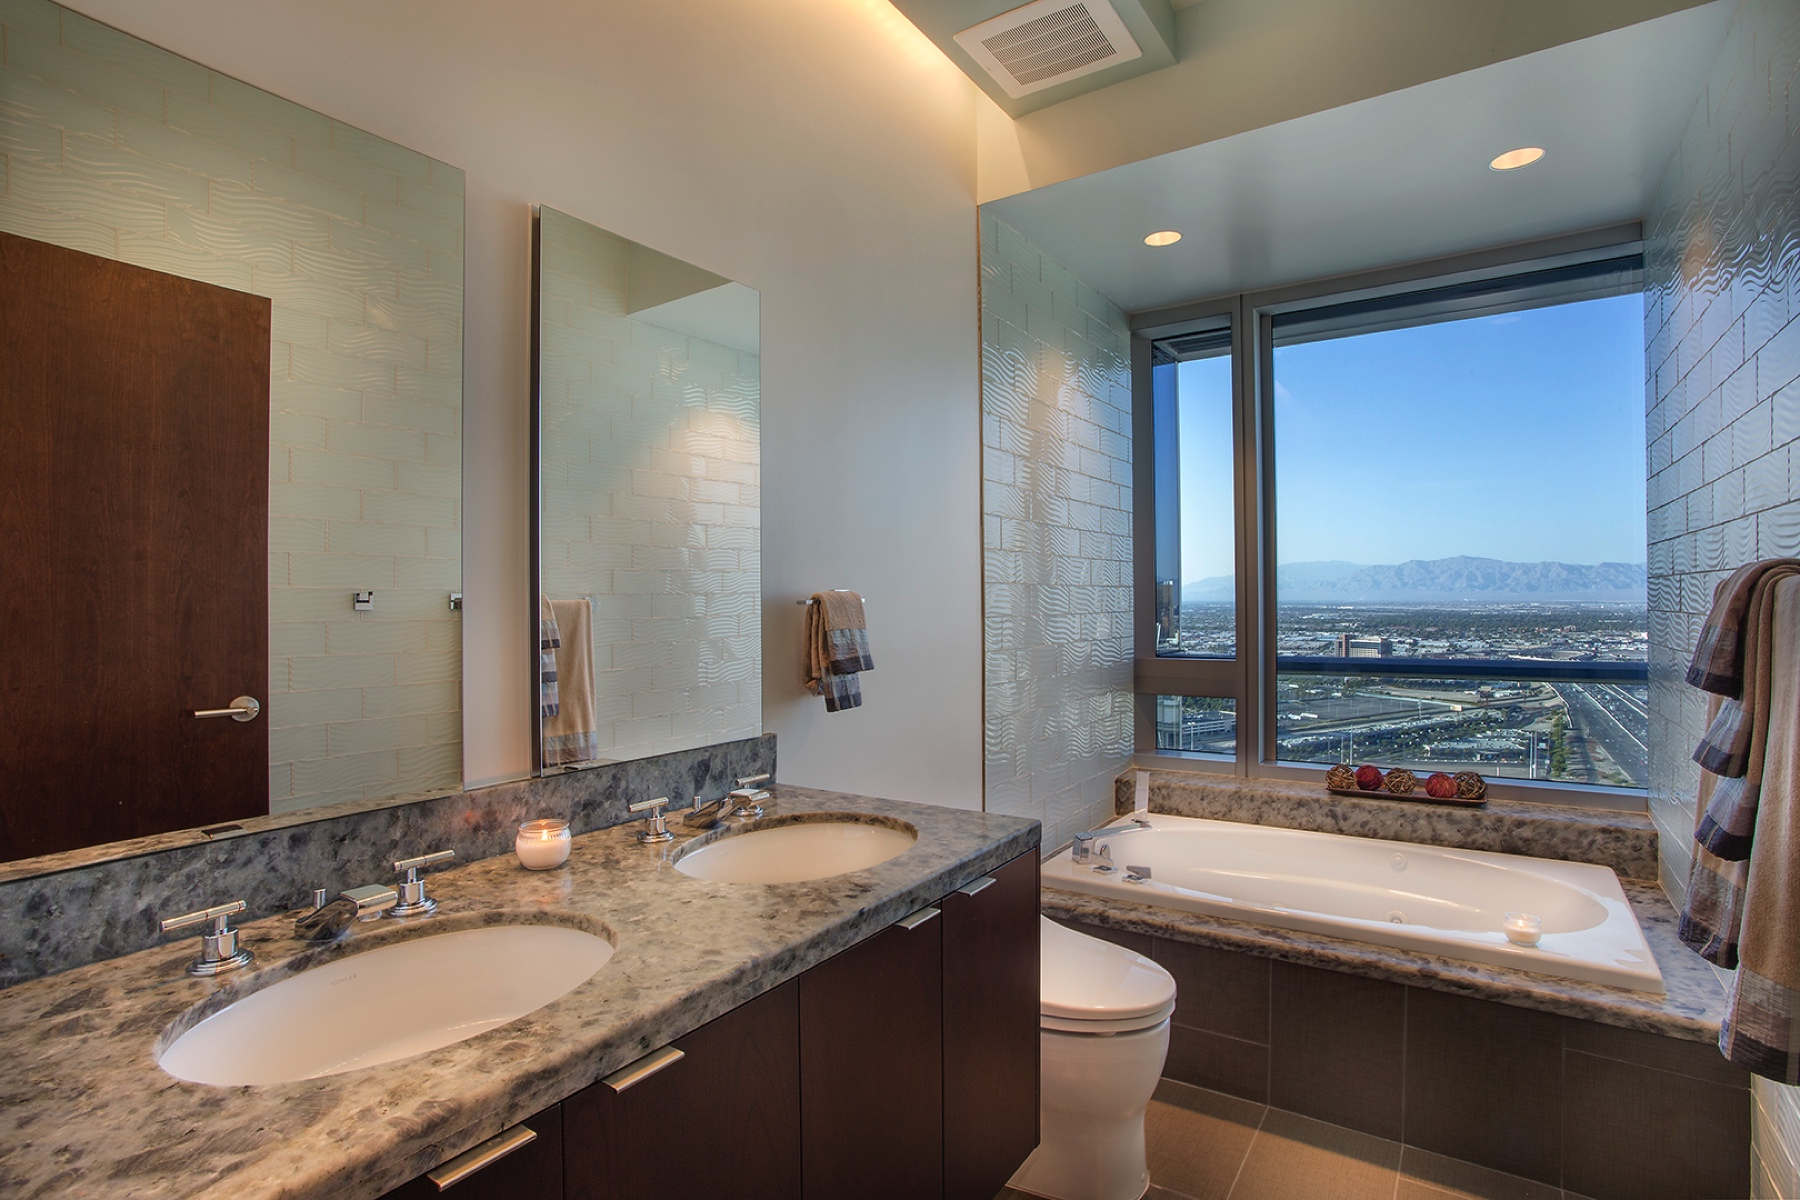 Additional photo for property listing at The Sky-Estate Penthouse at The Martin, Las Vegas 4471 Dean Martin Dr, 4308 Las Vegas, Nevada 89103 United States